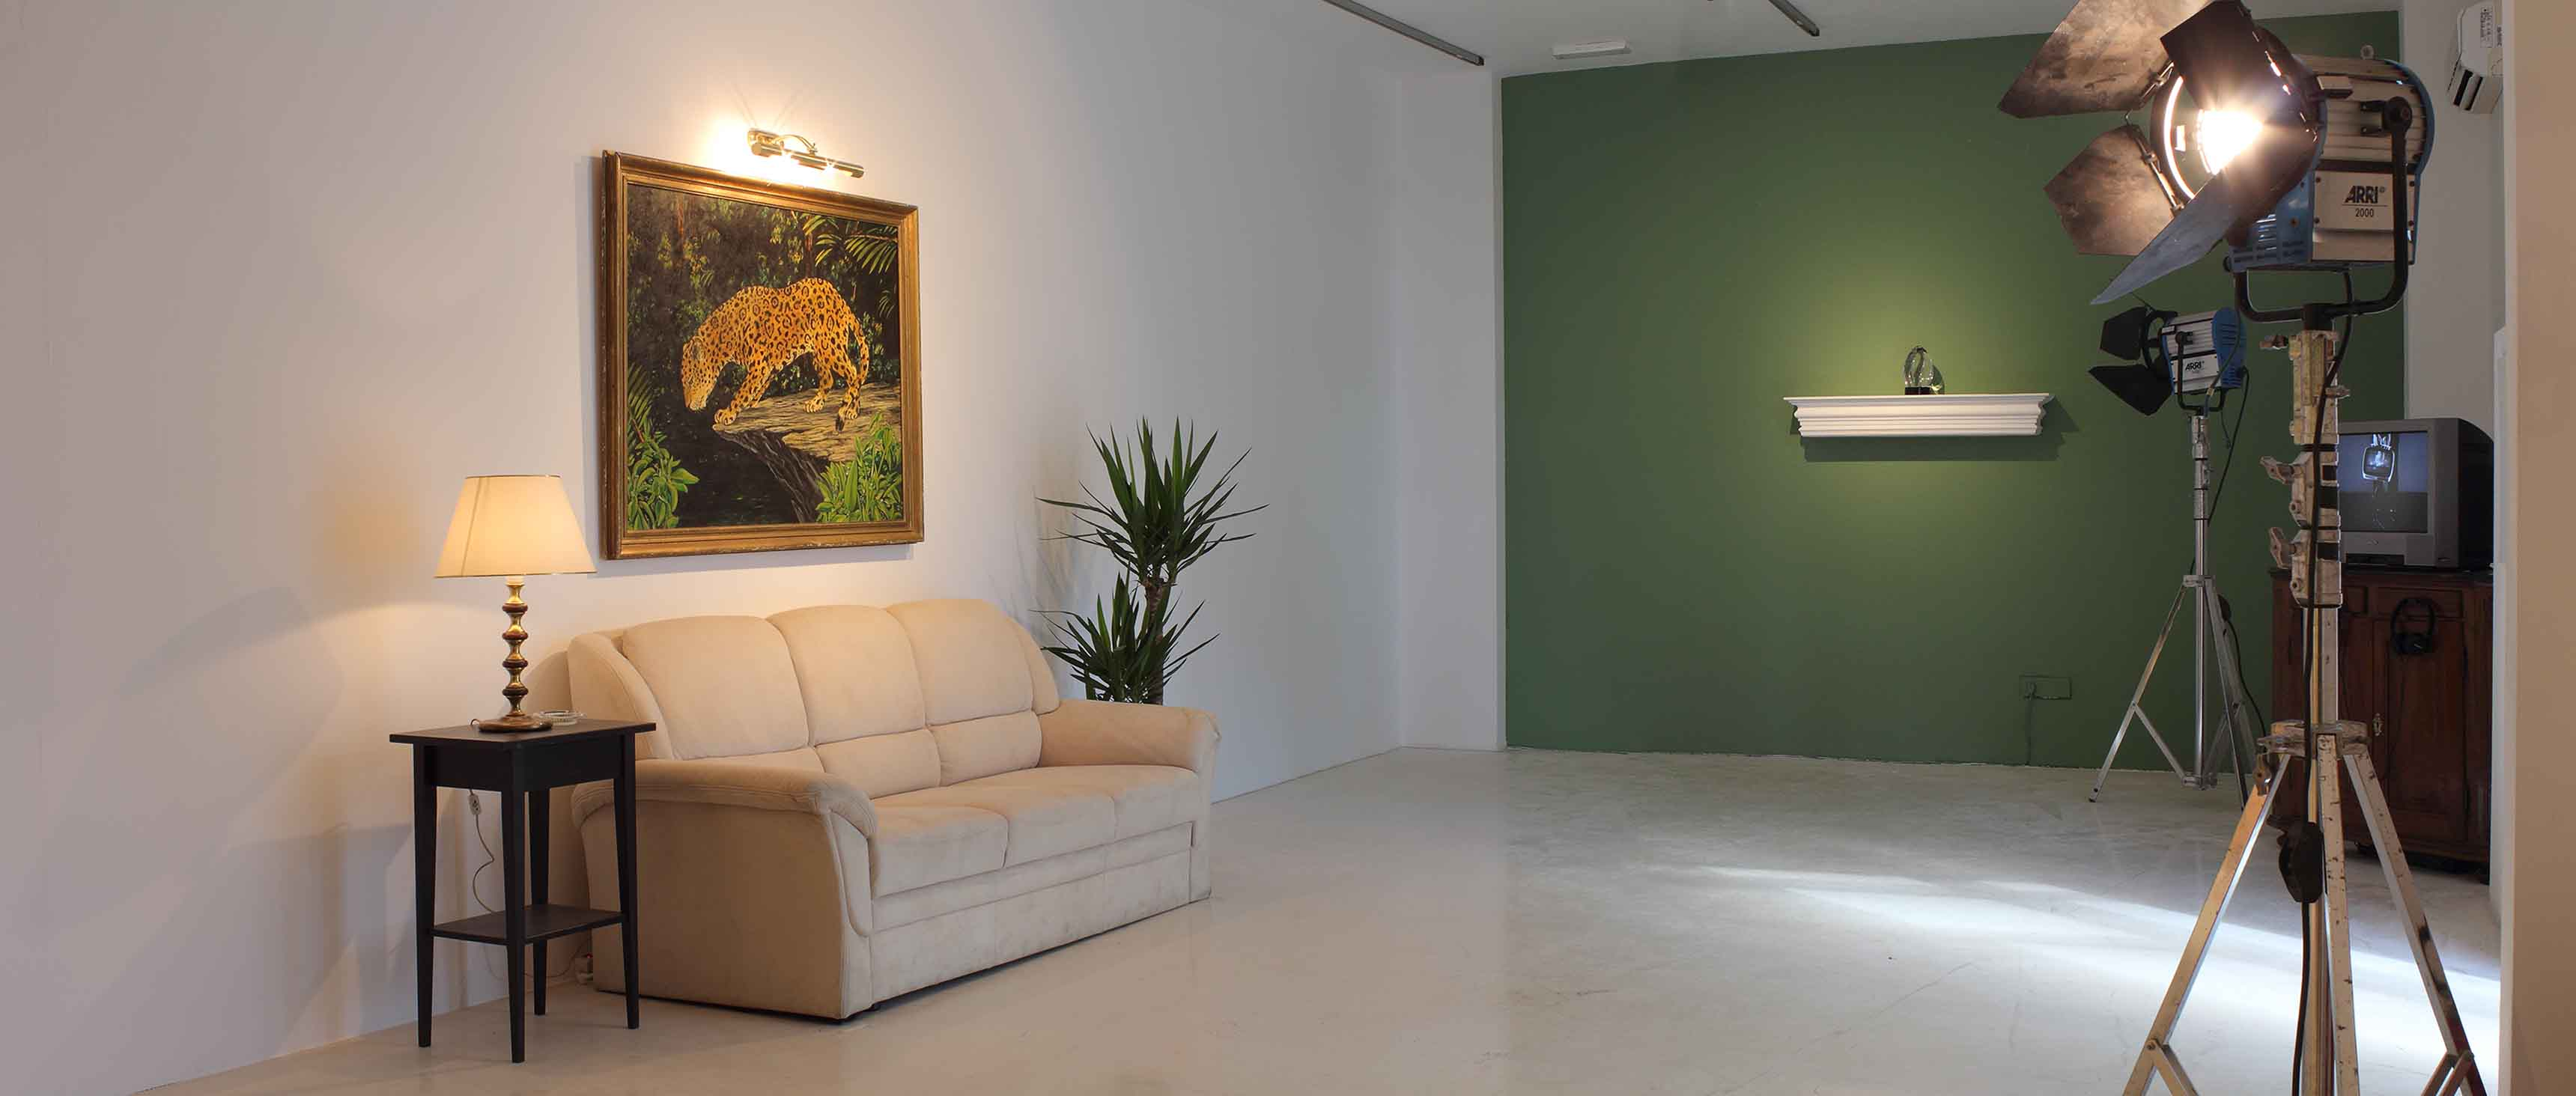 FADE IN 2: EXT. MODERNIST HOME — NIGHT - Installation view